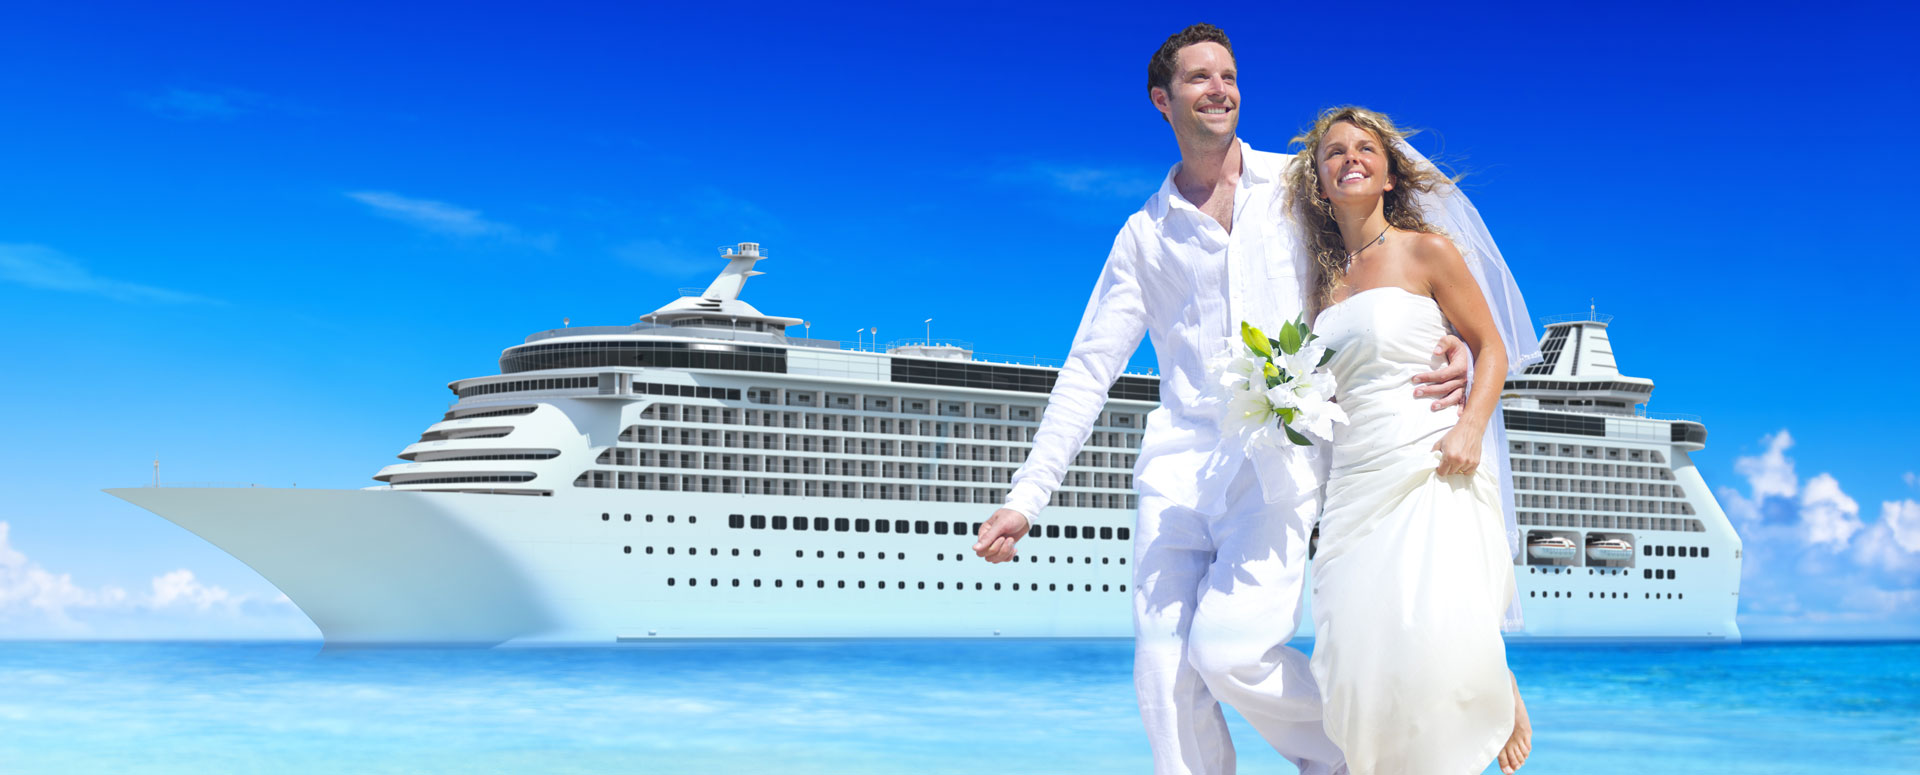 Weddings at Sea Couple